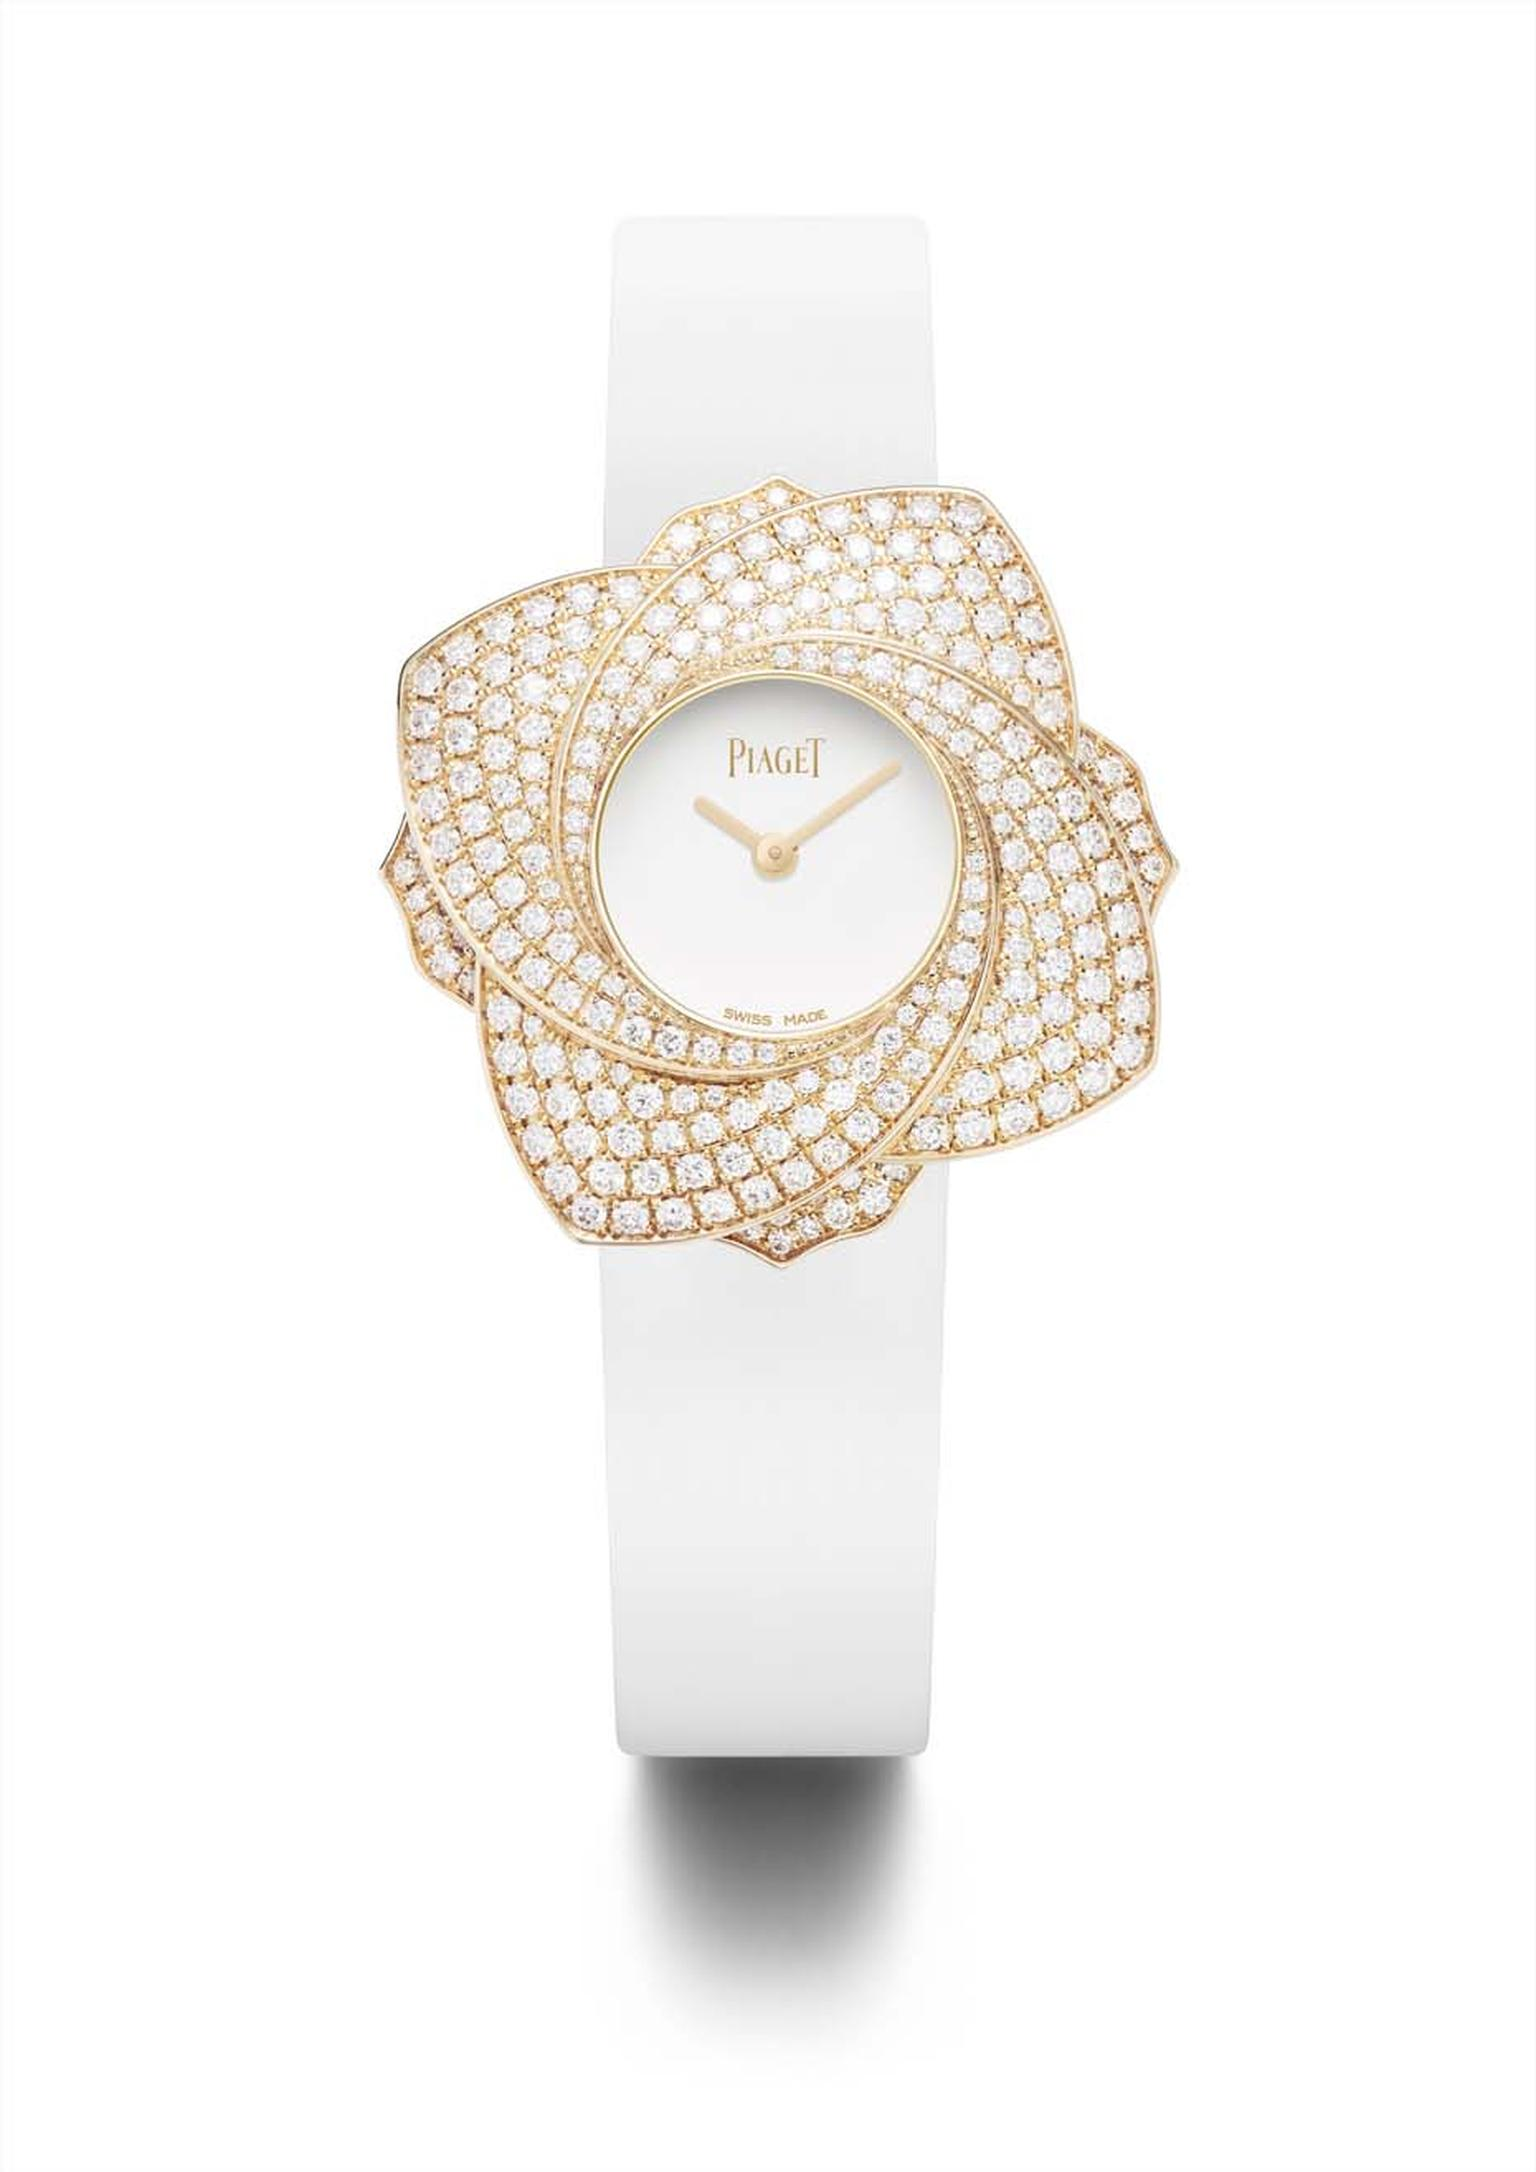 Piaget Limelight Blooming Rose is an elegant high jewellery ladies' watch with a marvellous twist. Featuring a unique swivelling bezel, the wearer can choose whether to show four or six petals.